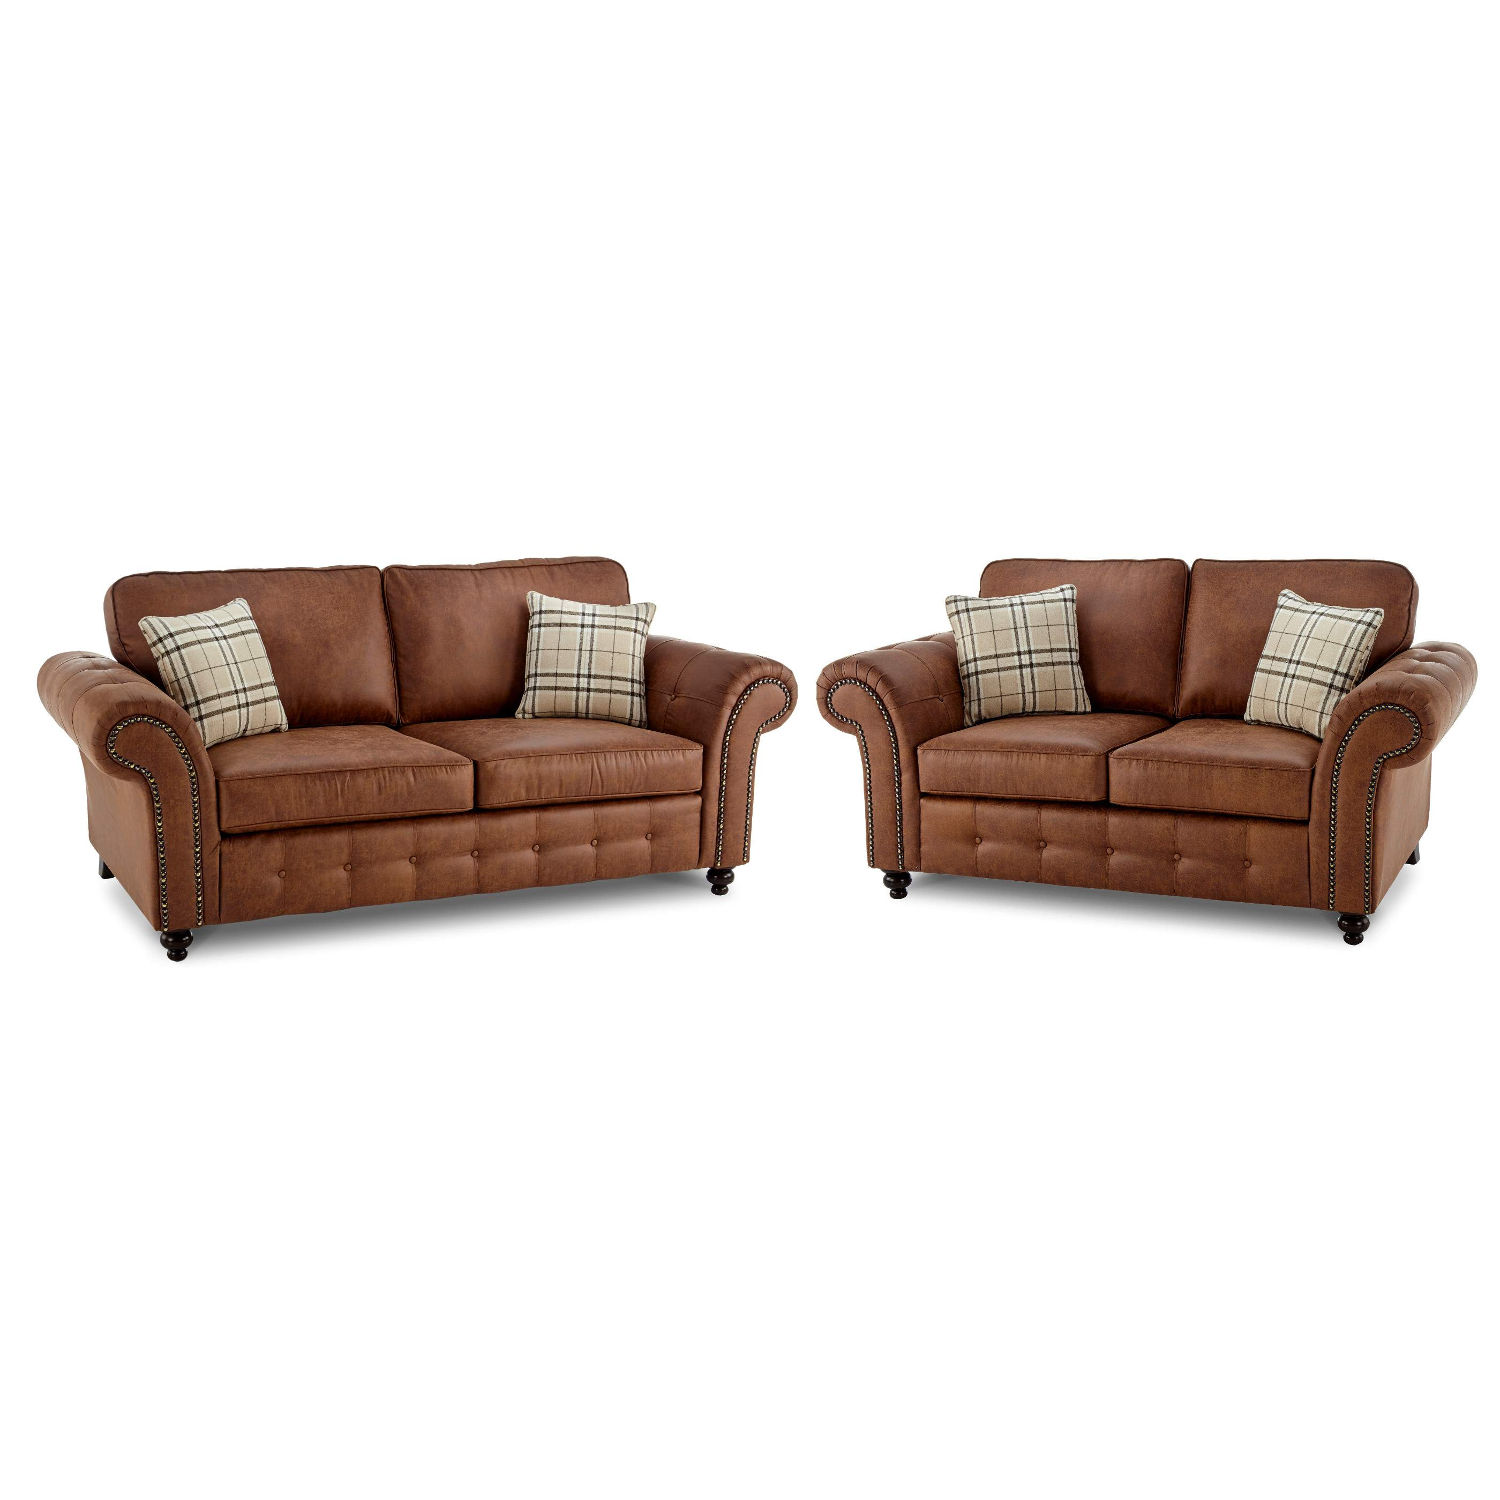 Oakland Faux Leather 3 & 2 Seater Sofa Combo in Brown